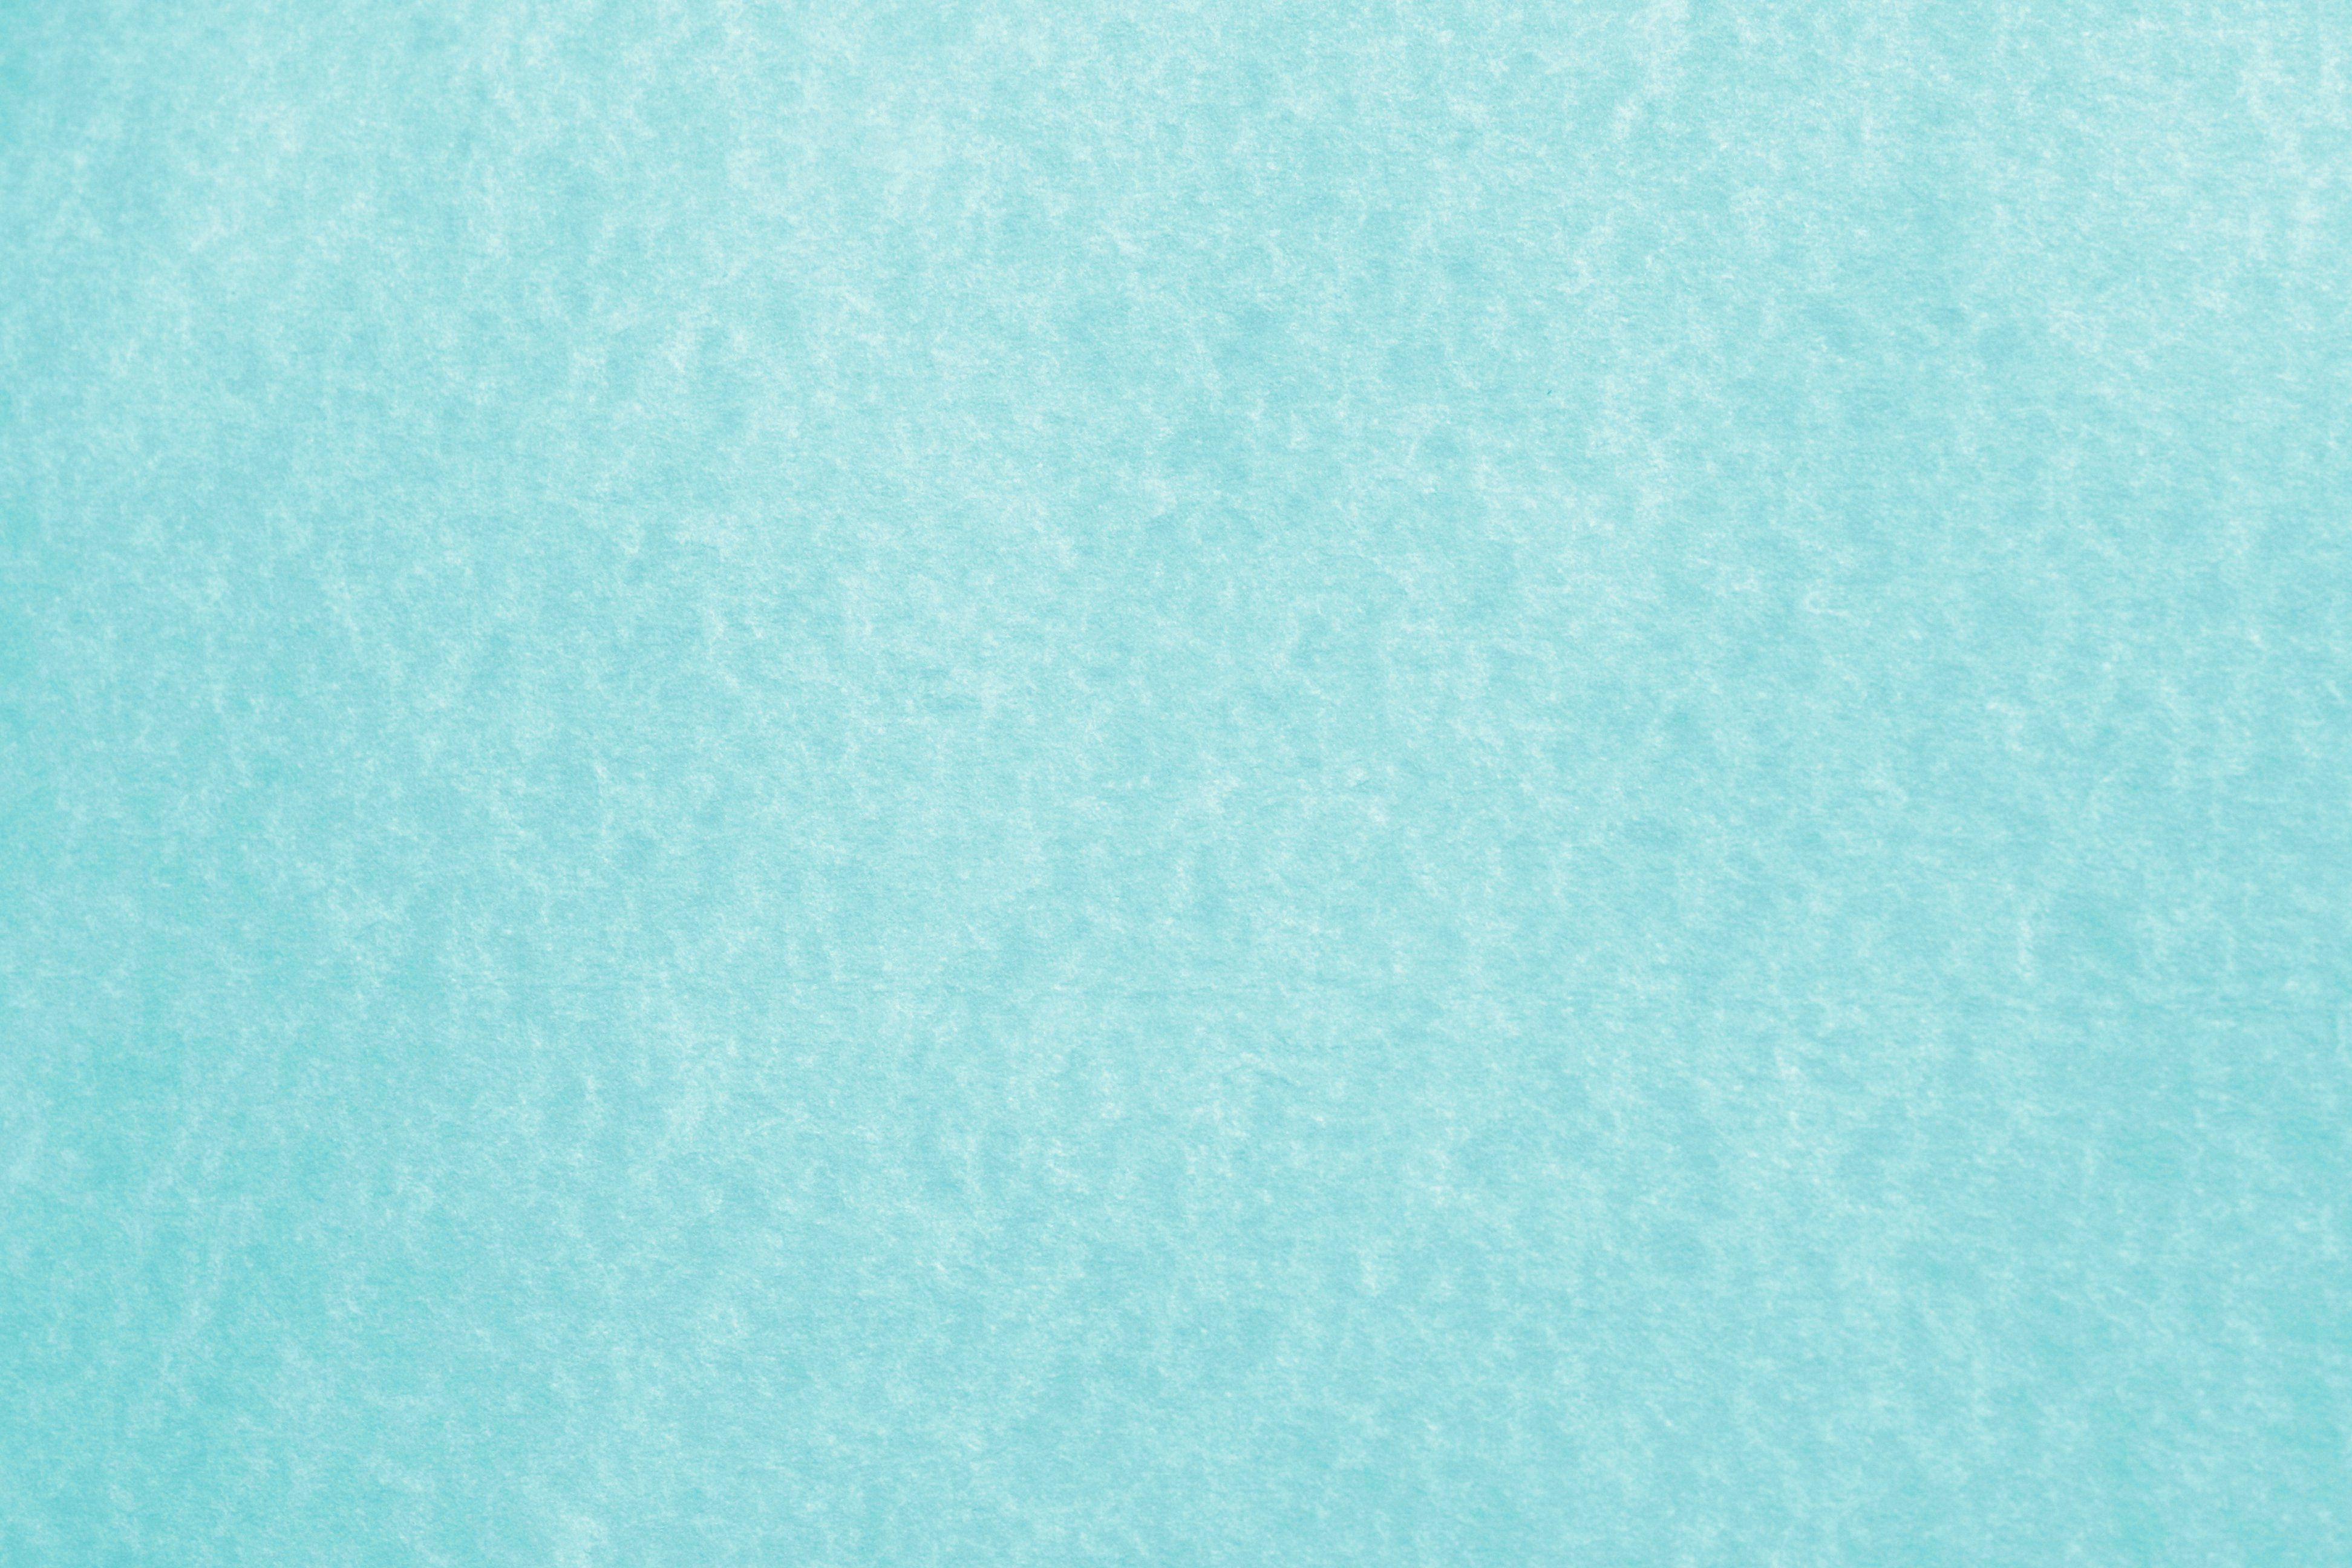 The Texture Of Teal And Turquoise: Turquoise Parchment Paper Texture